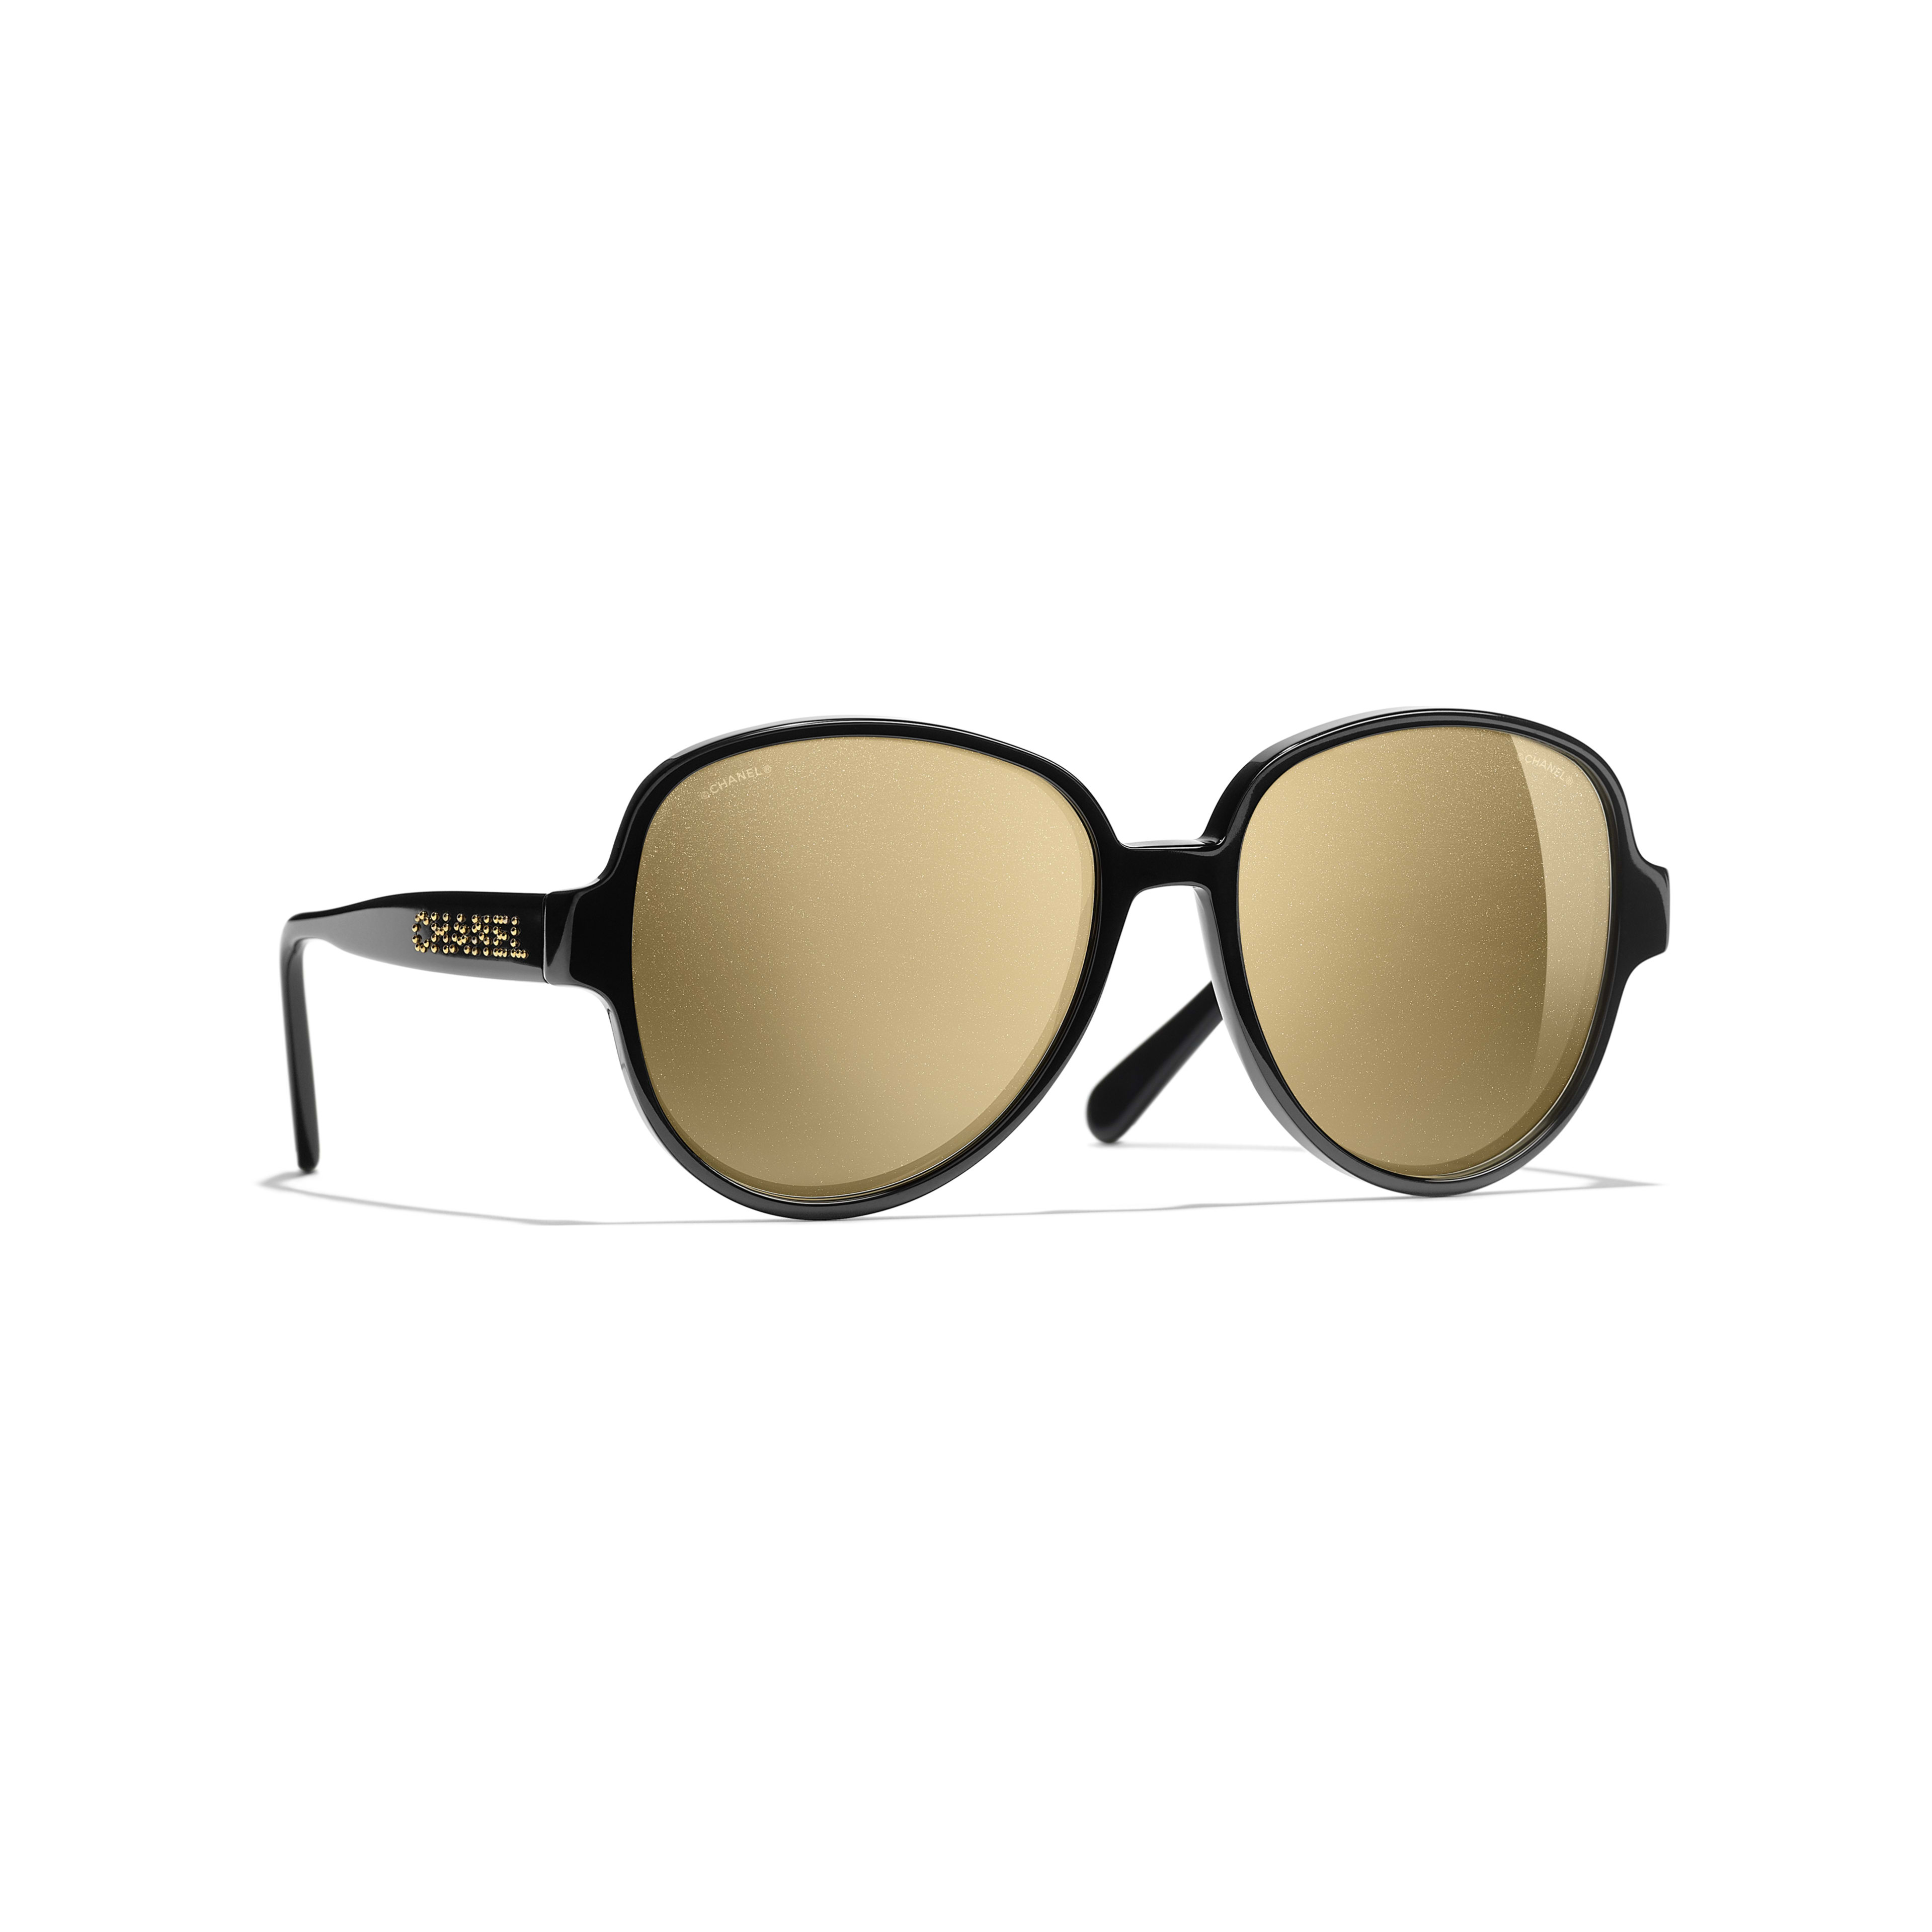 Pilot Sunglasses - Black - Acetate - Default view - see standard sized version